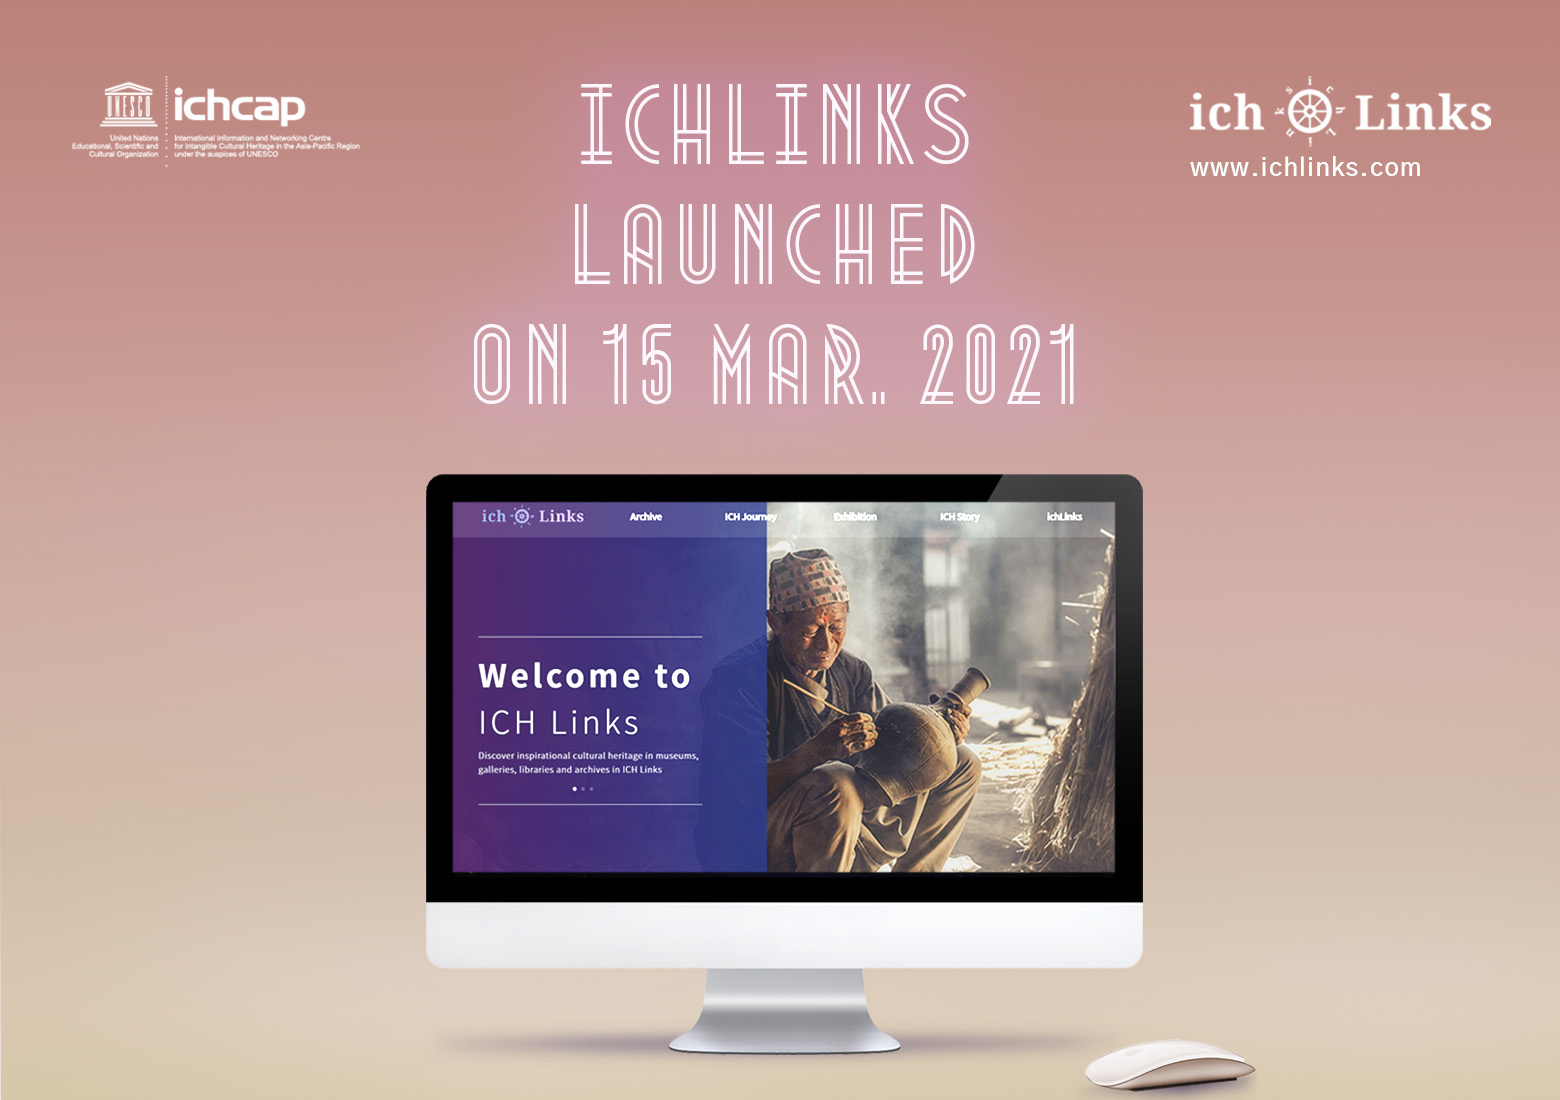 ICH Information-sharing Digital Platform ichLinks Launched on the 15th of March 2021